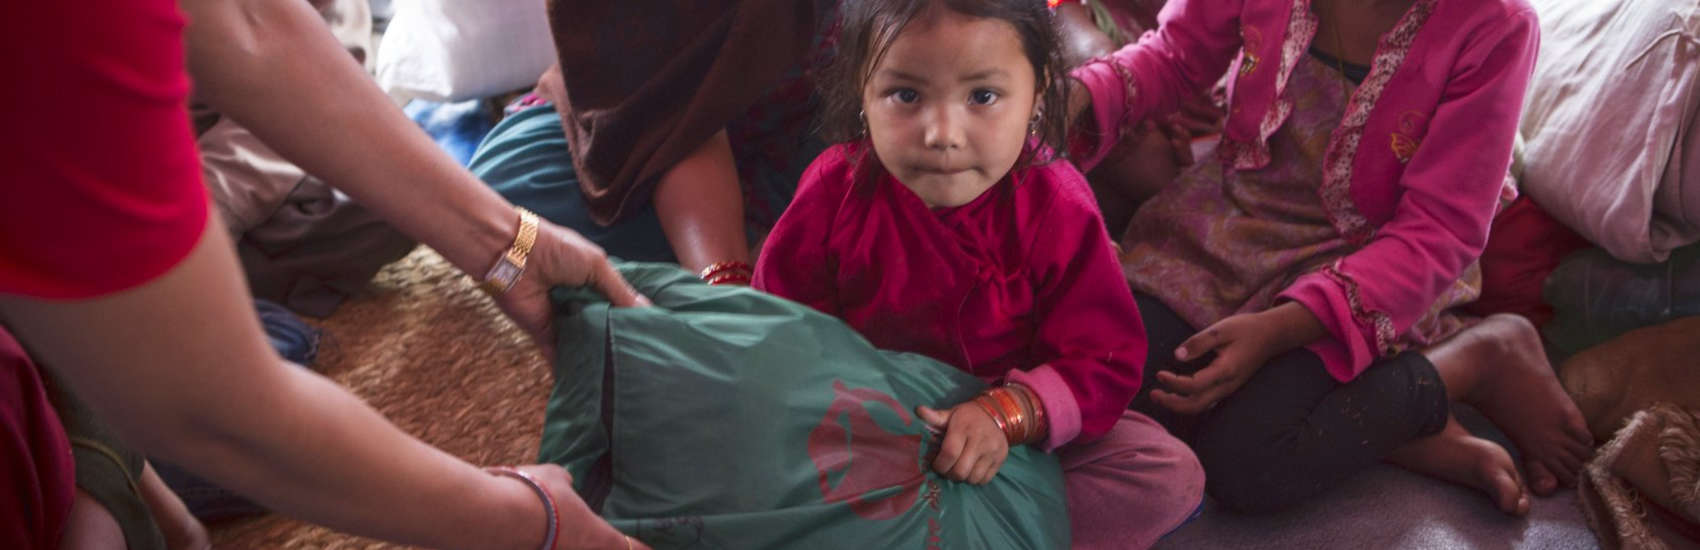 Aswini, age four, lived with her family in a tent settlement in Nepal after the earthquake. Save the Children provided displaced families, including Aswini's, essential items including infant kits, warm clothes, hats and blankets as well as hygiene kits. Photo credit: Jonathan Hyams/Save the Children, April 2015.